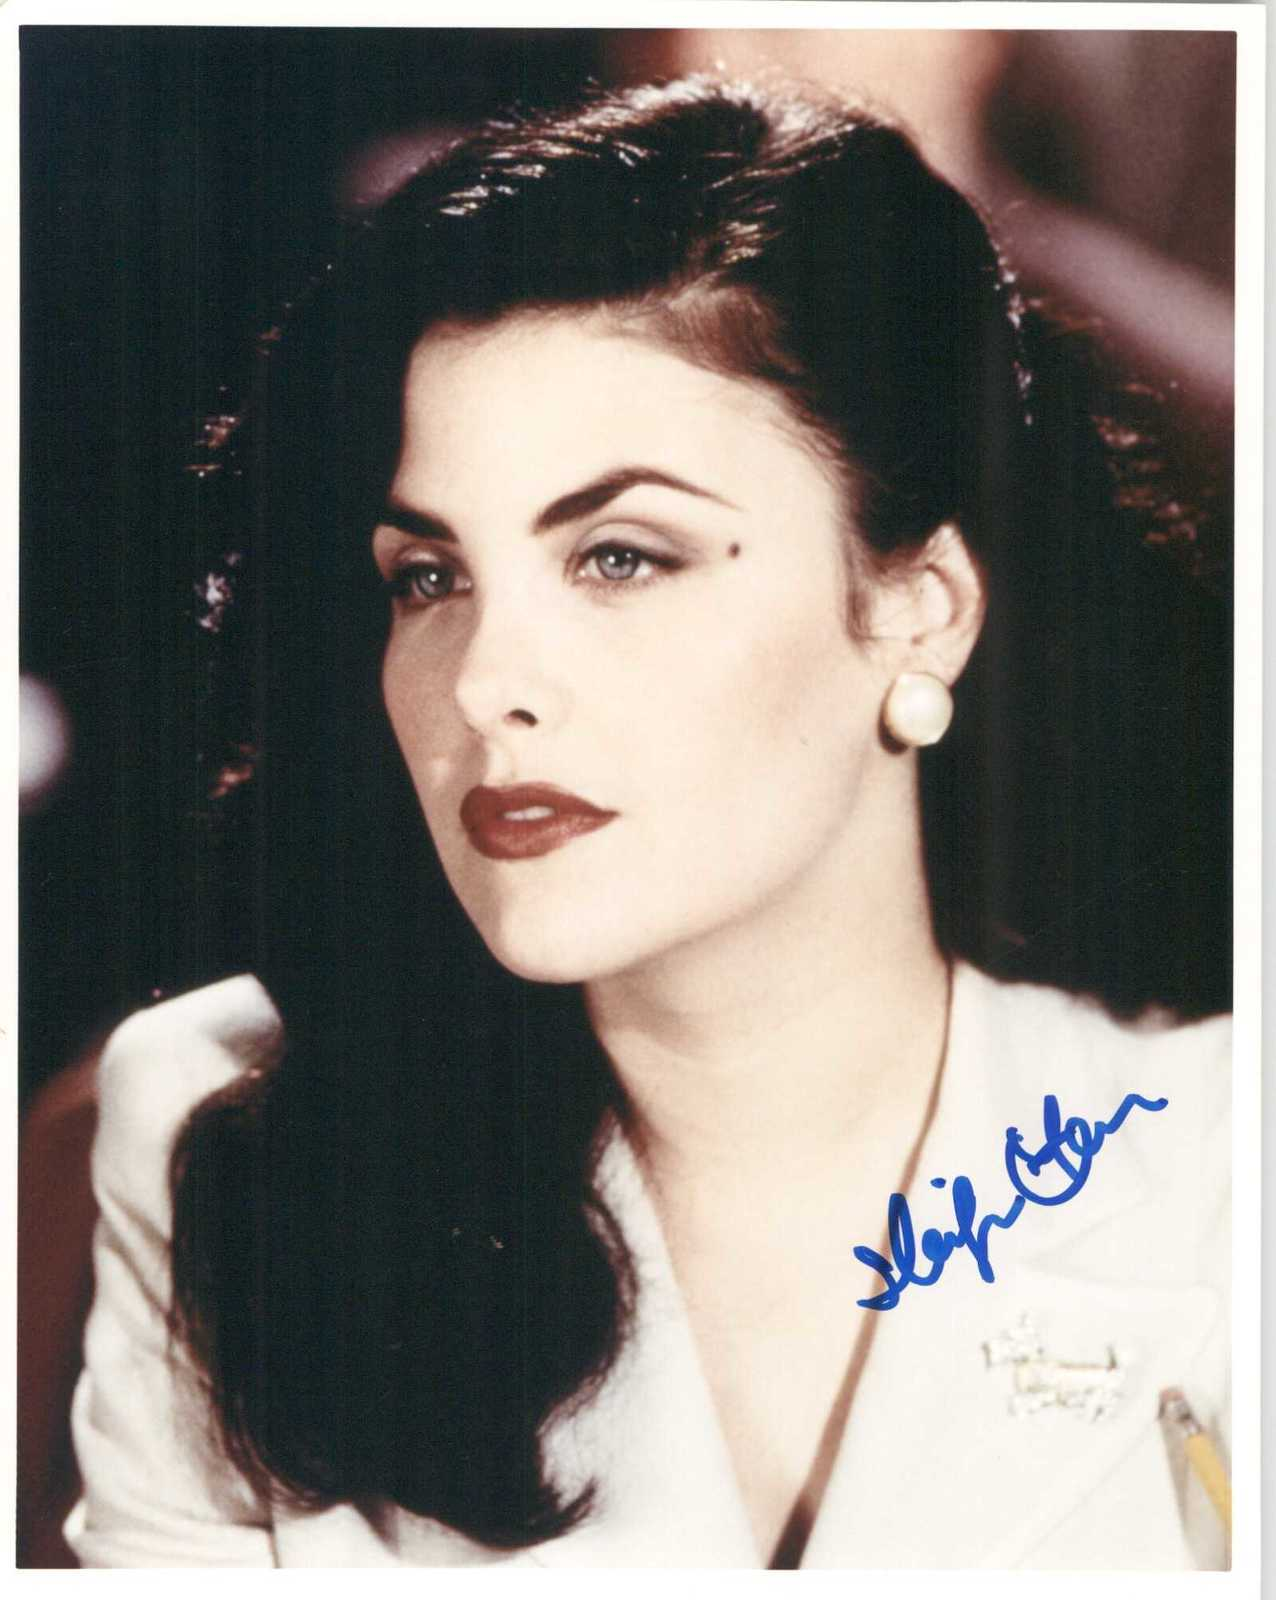 Primary image for Sherilyn Fenn Signed Autographed Glossy 8x10 Photo